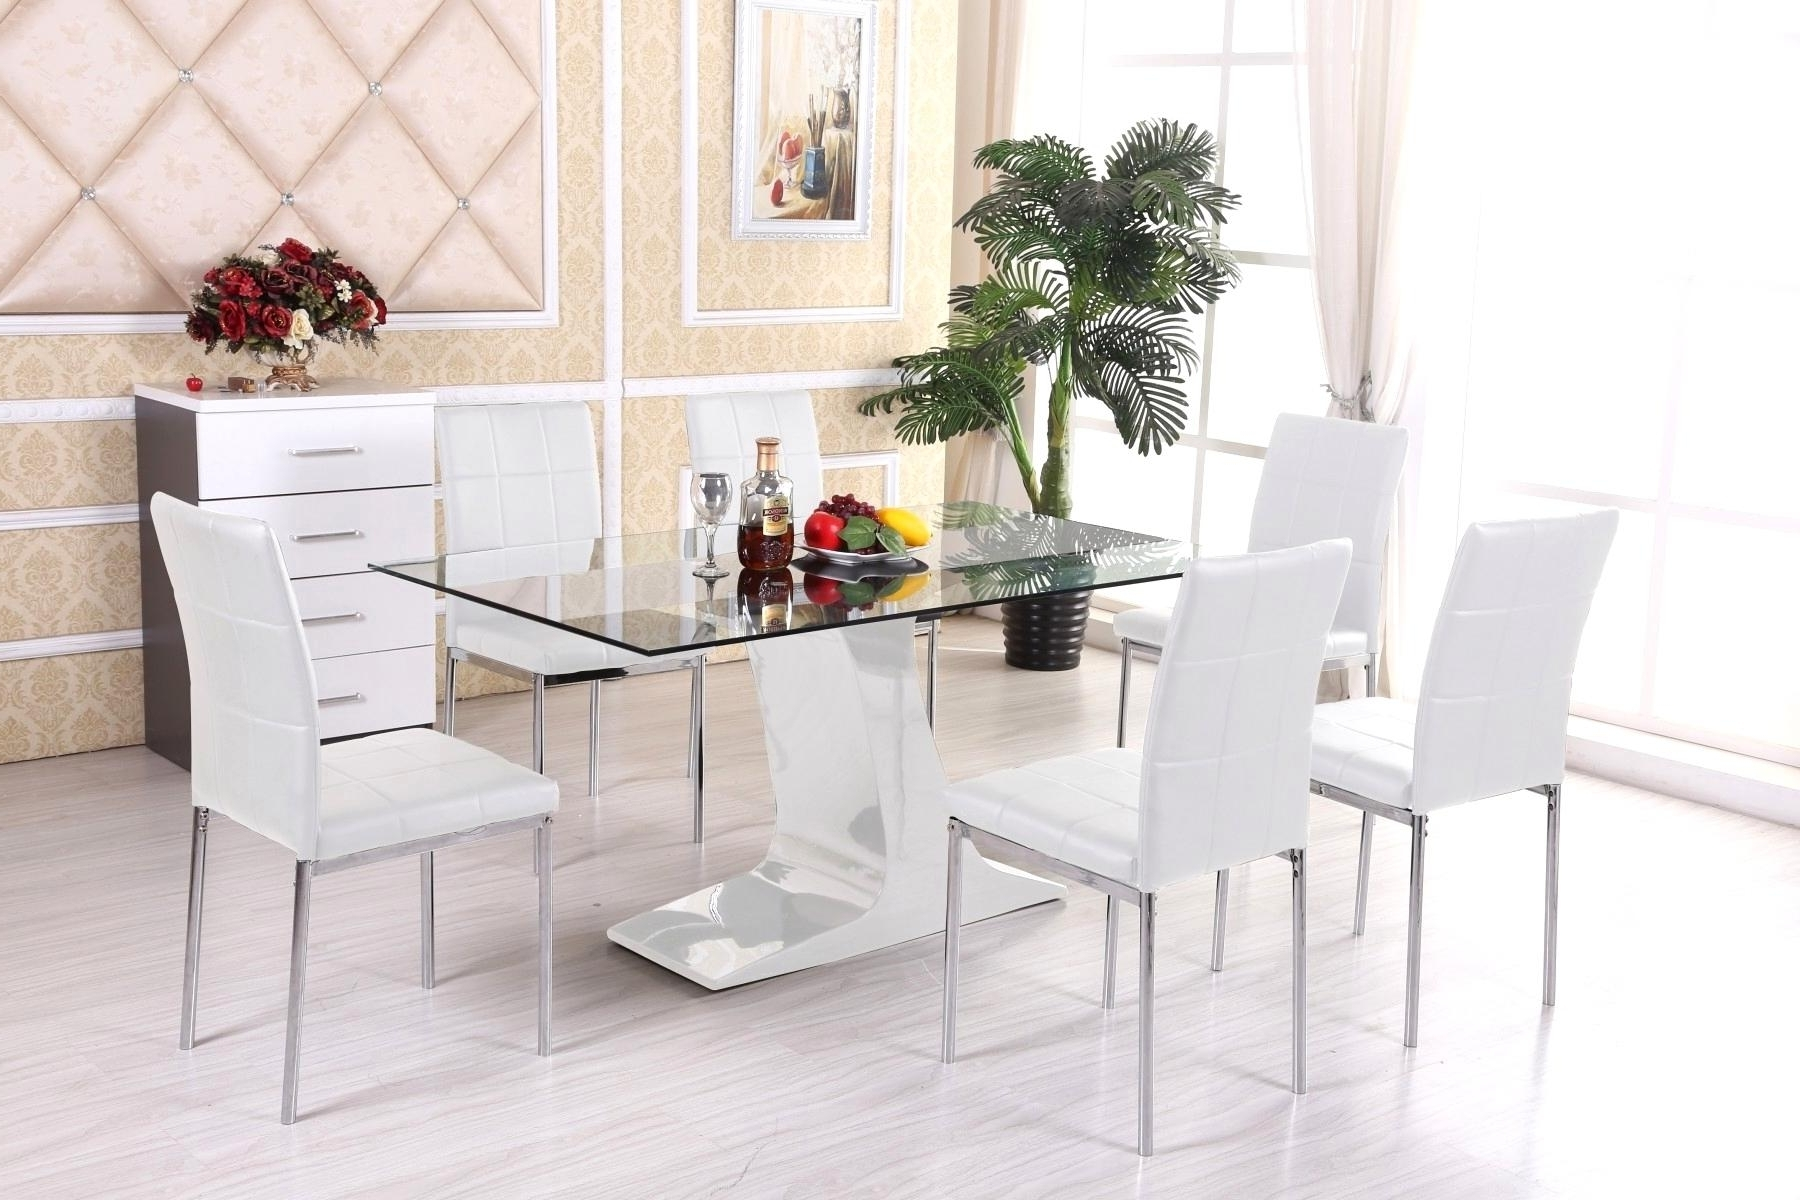 2017 Glass Dining Tables White Chairs Intended For Marvelous Dining Room Sets White Glass Ining Table And Chairs Modern (Gallery 4 of 25)